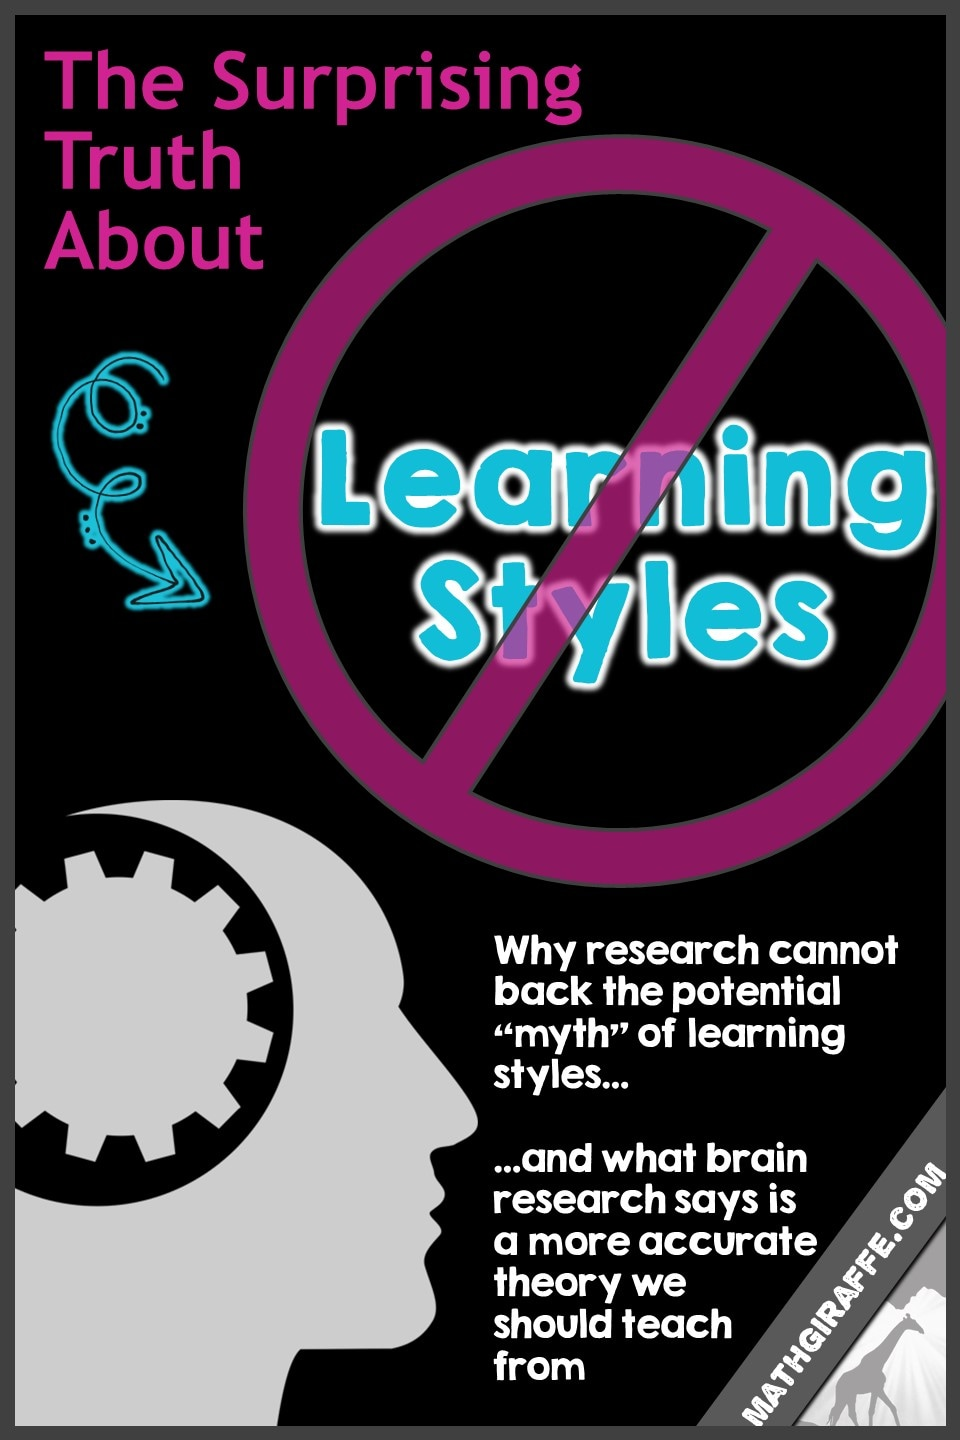 The Learning Styles Philosophy vs. the More Accurate Dual Coding Theory